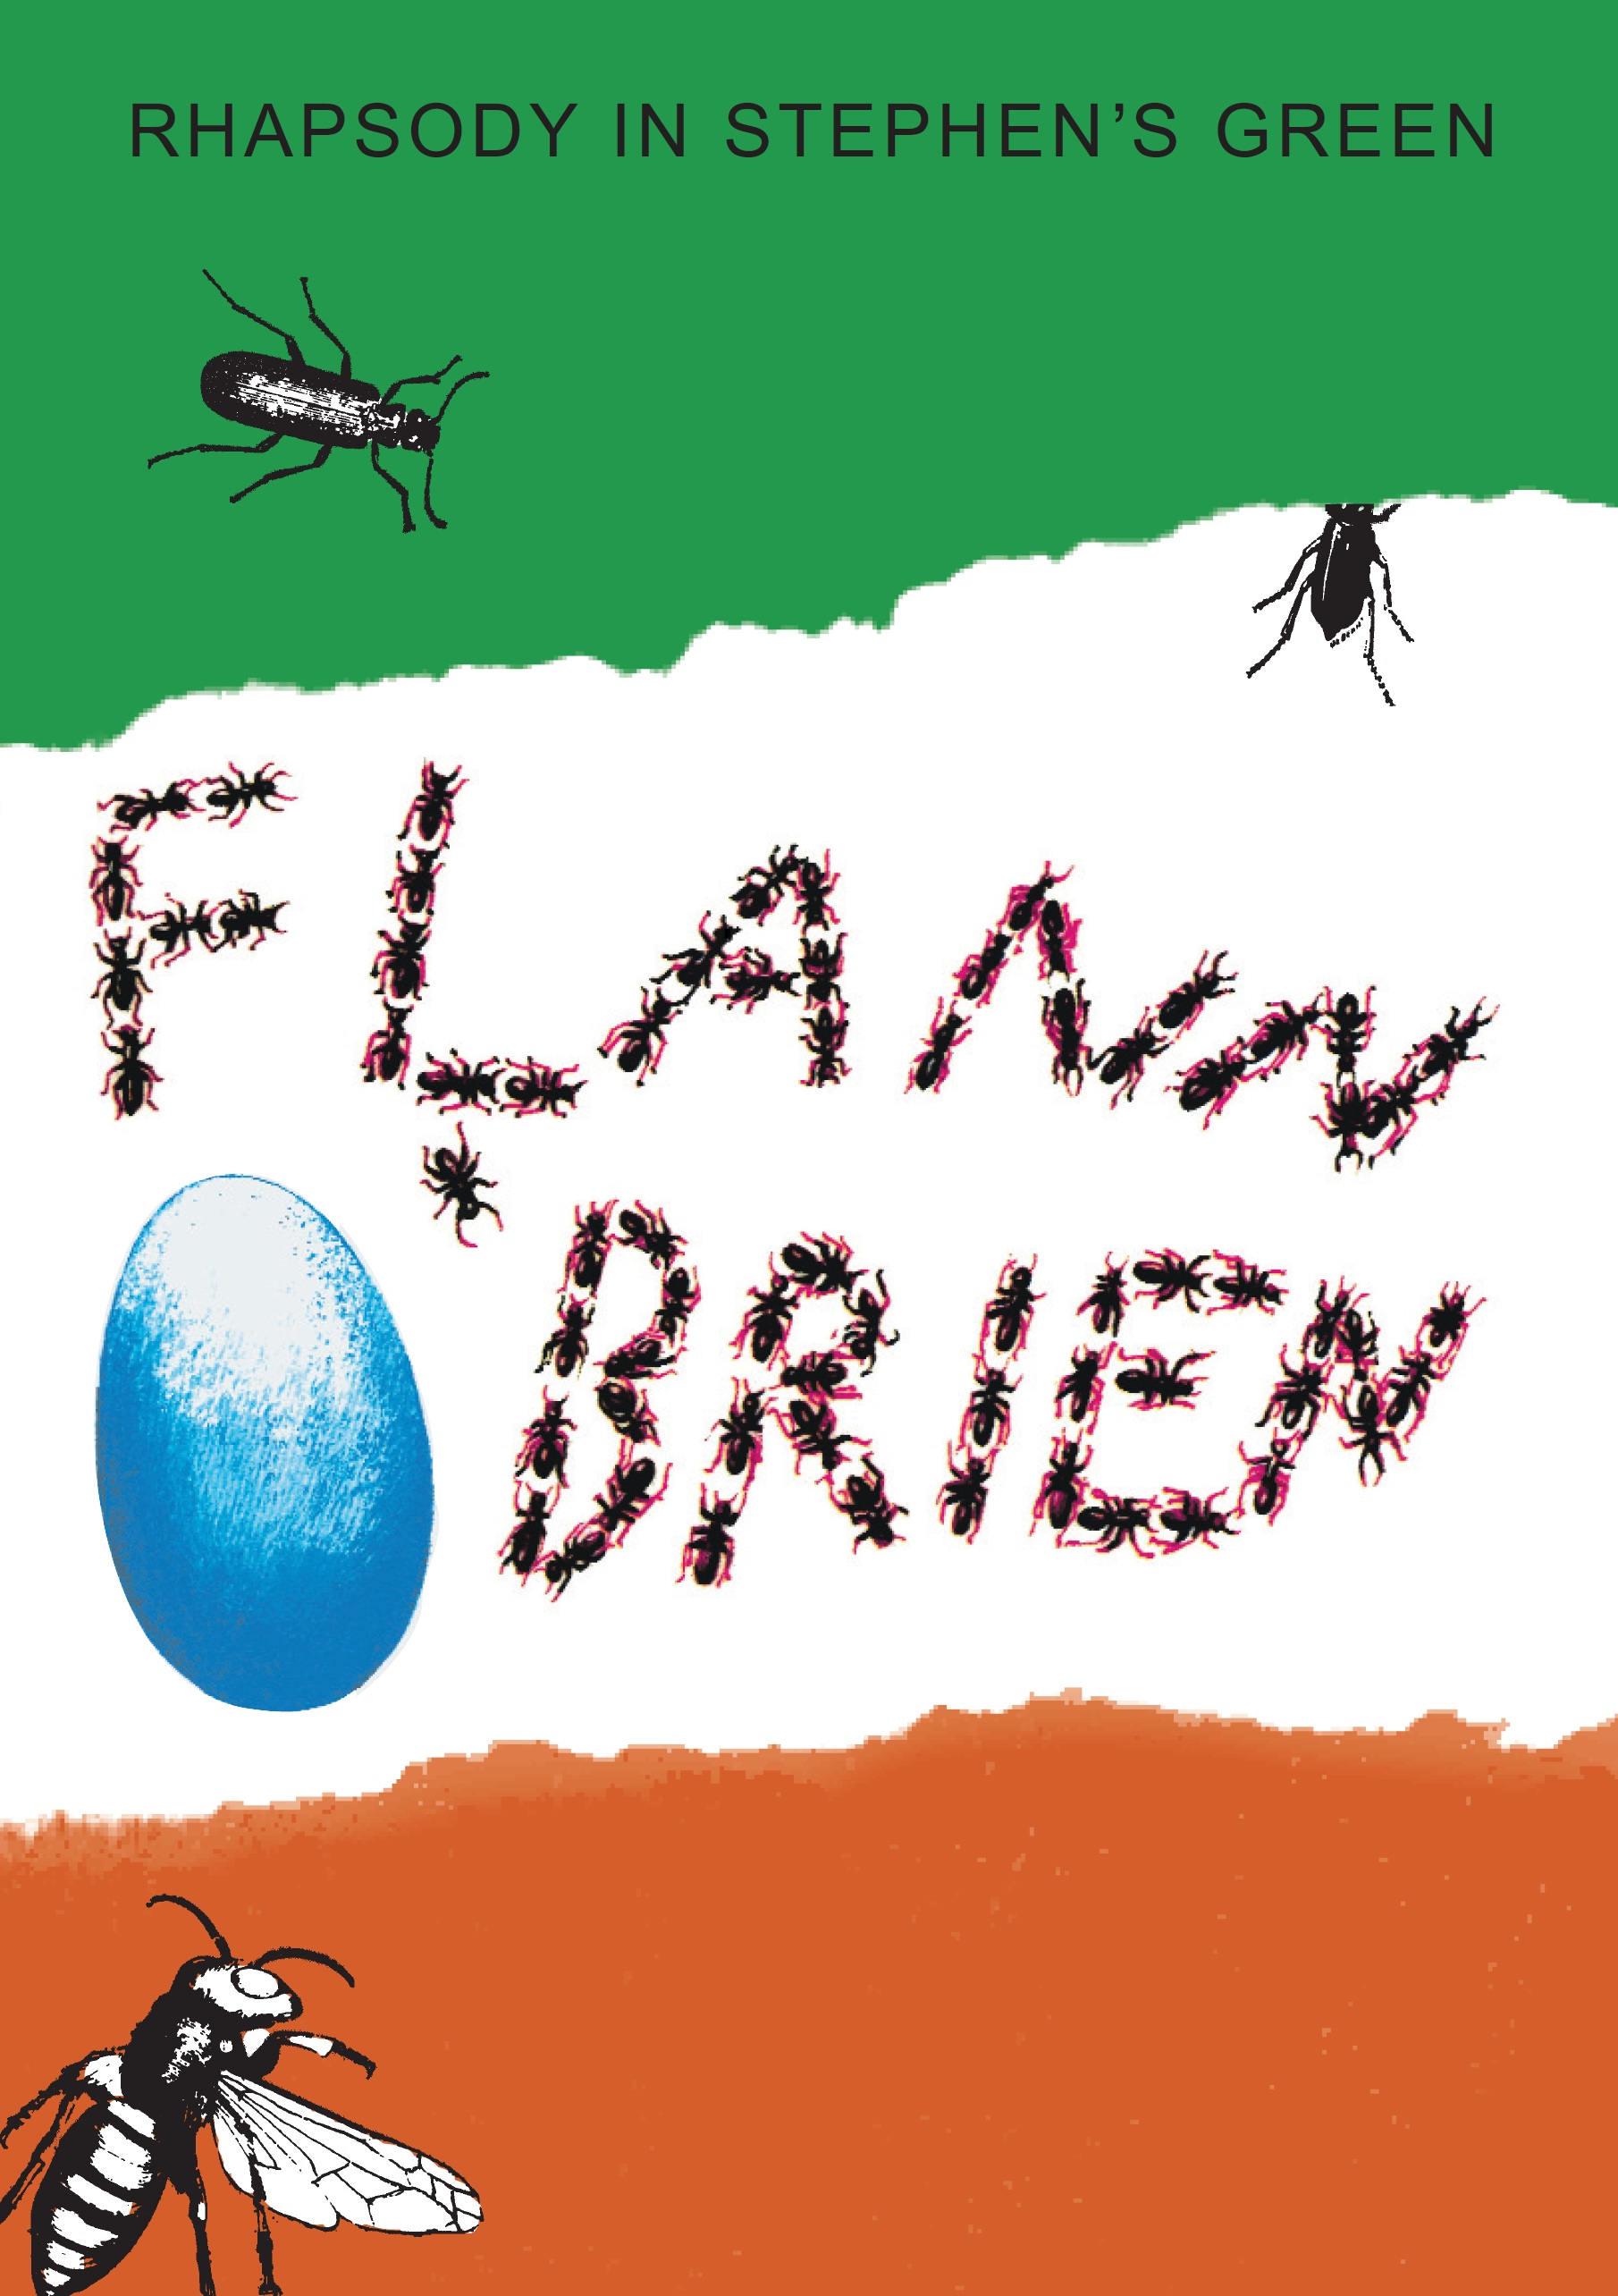 Rhapsody in Stephen's Green/The Insect Play By: Flann O'Brien